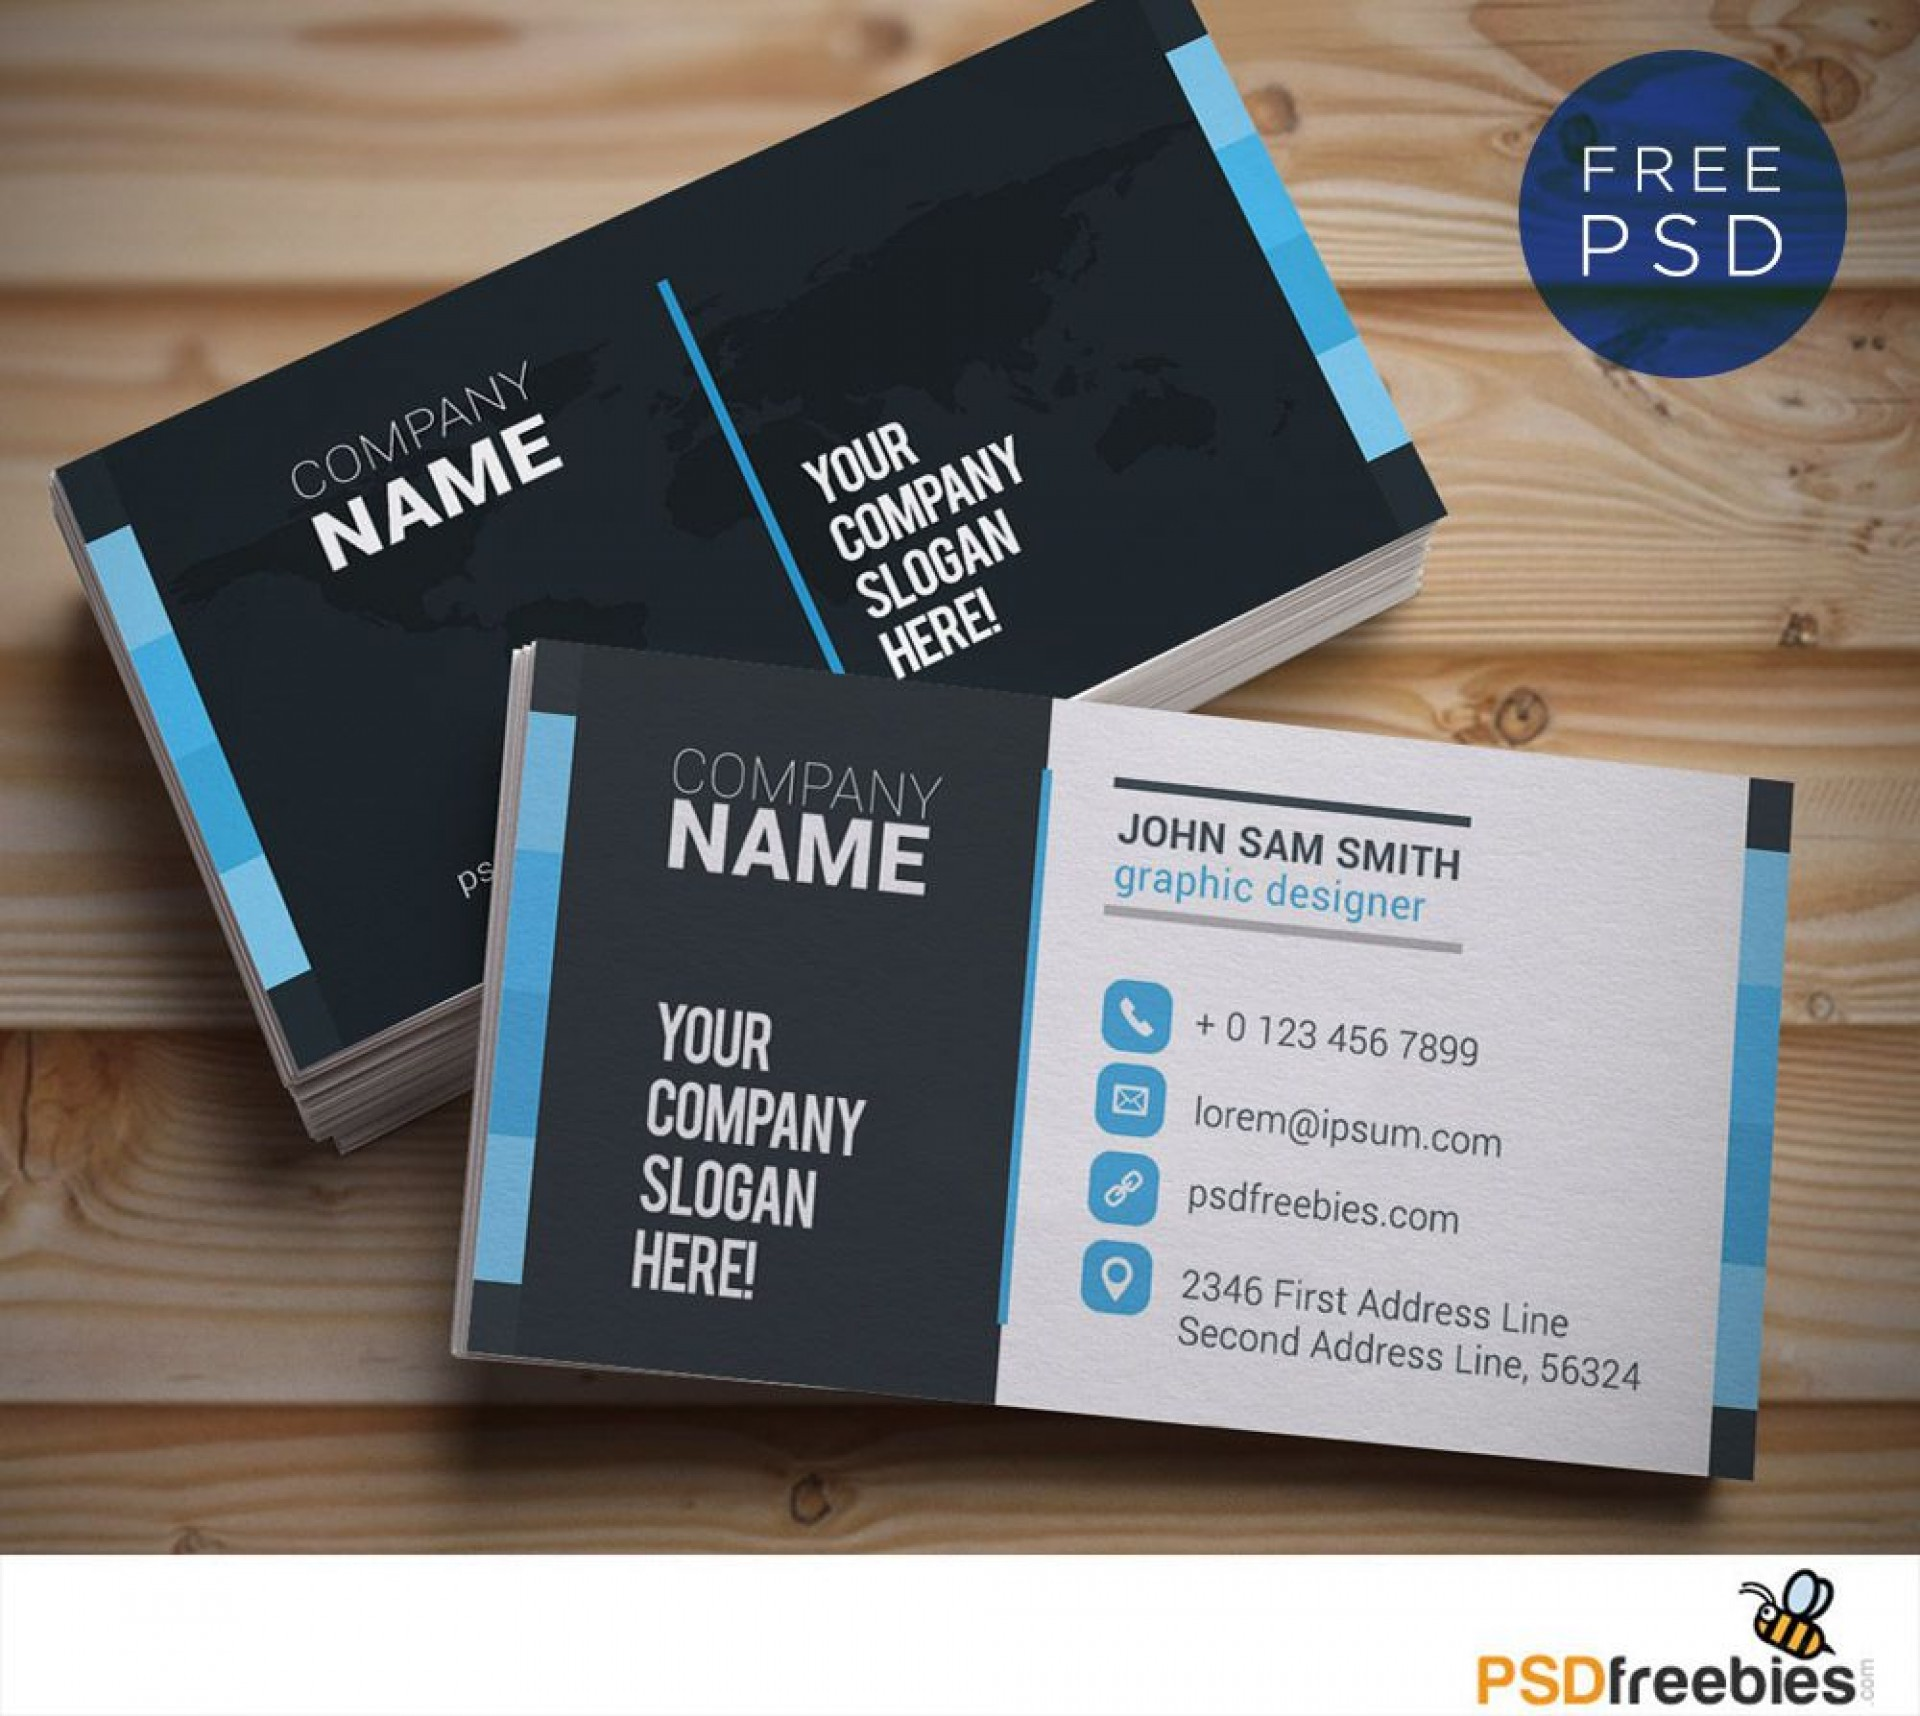 009 Awesome Free Download Busines Card Template Example  Templates Psd File M Word1920